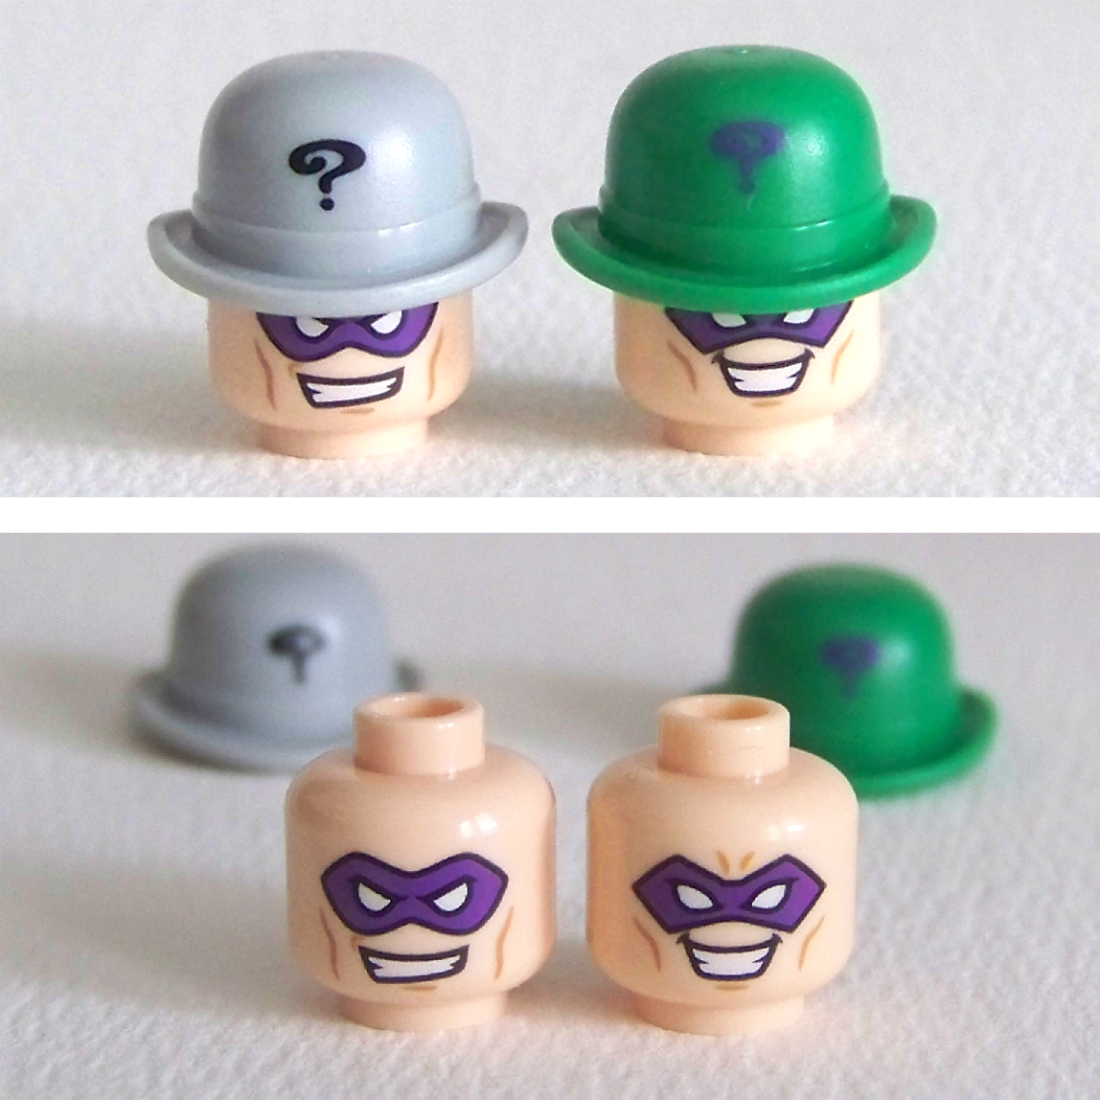 LEGO Riddler Head comparison